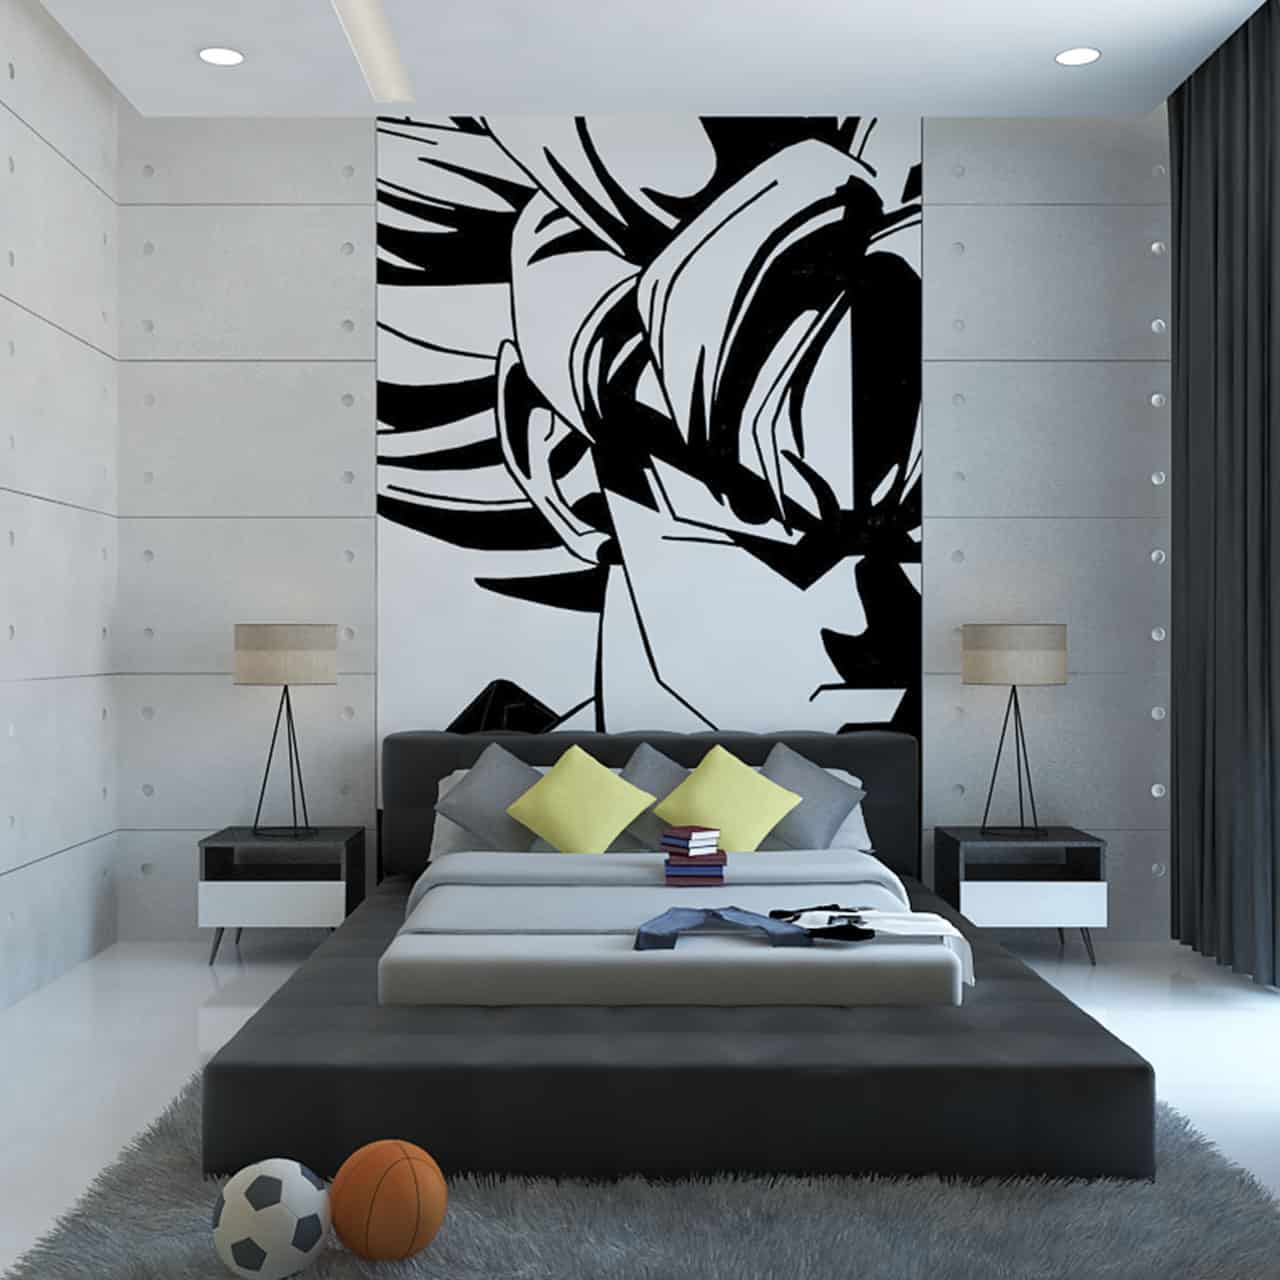 Using Artwork as Wall Decor for Kids Bedroom